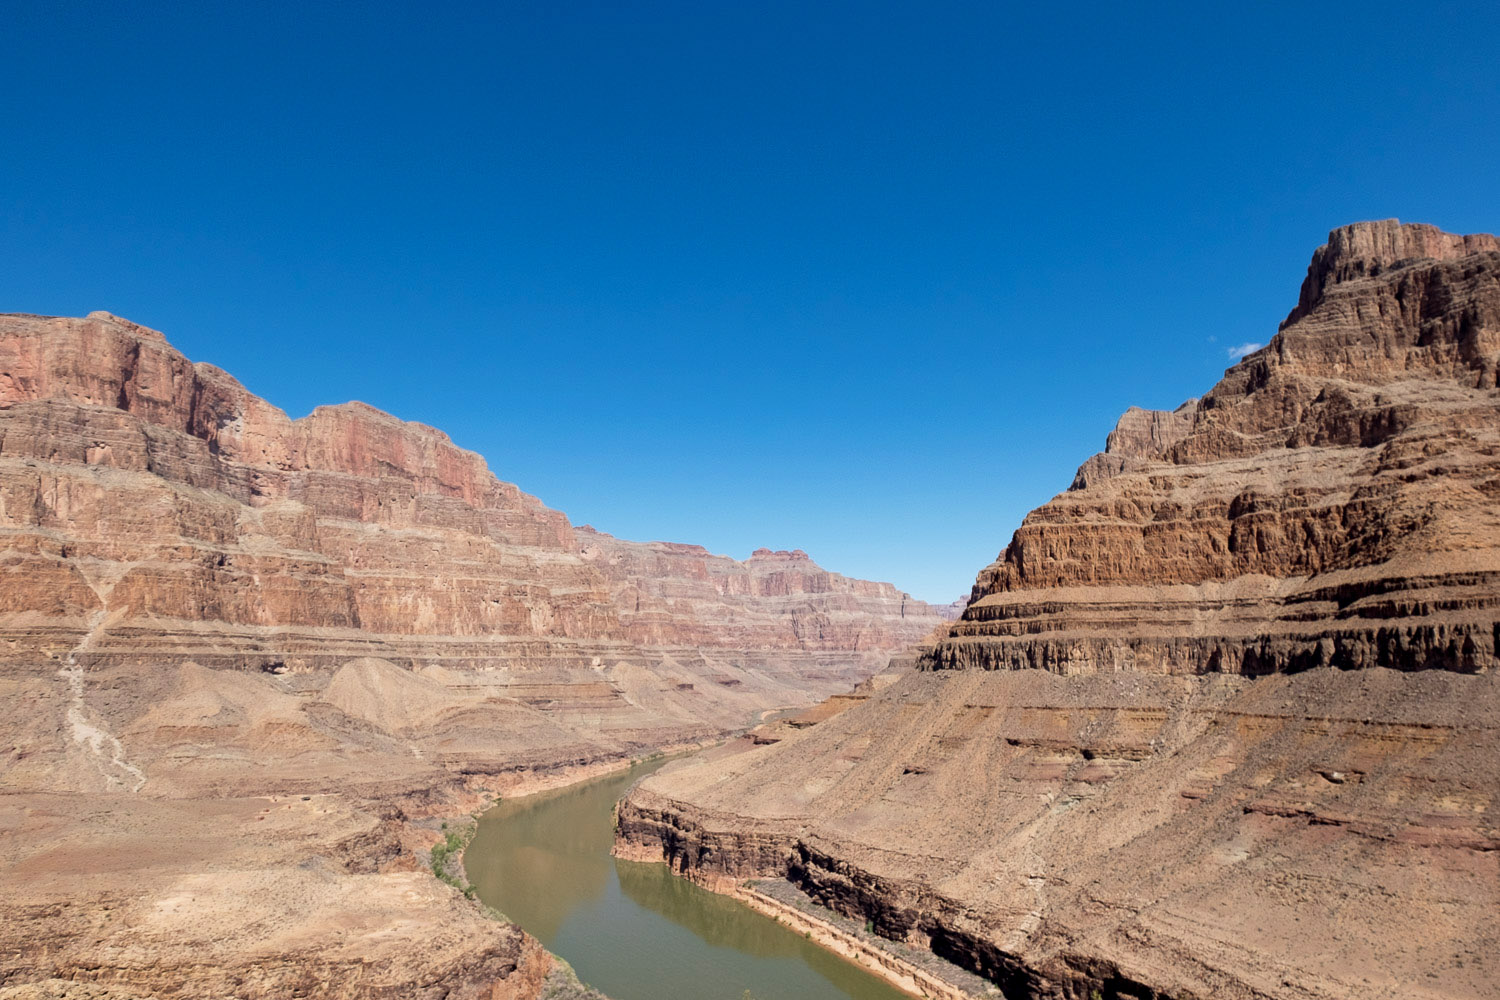 helicopter ride over grand canyon las vegas with Las Vegas Grand Canyon Helicopter on Grand Canyon Skywalk Glass Bridge likewise Buswrboat also Best Las Vegas Helicopter Tours also Phoenix Us Az P moreover 5starhelicoptertours.